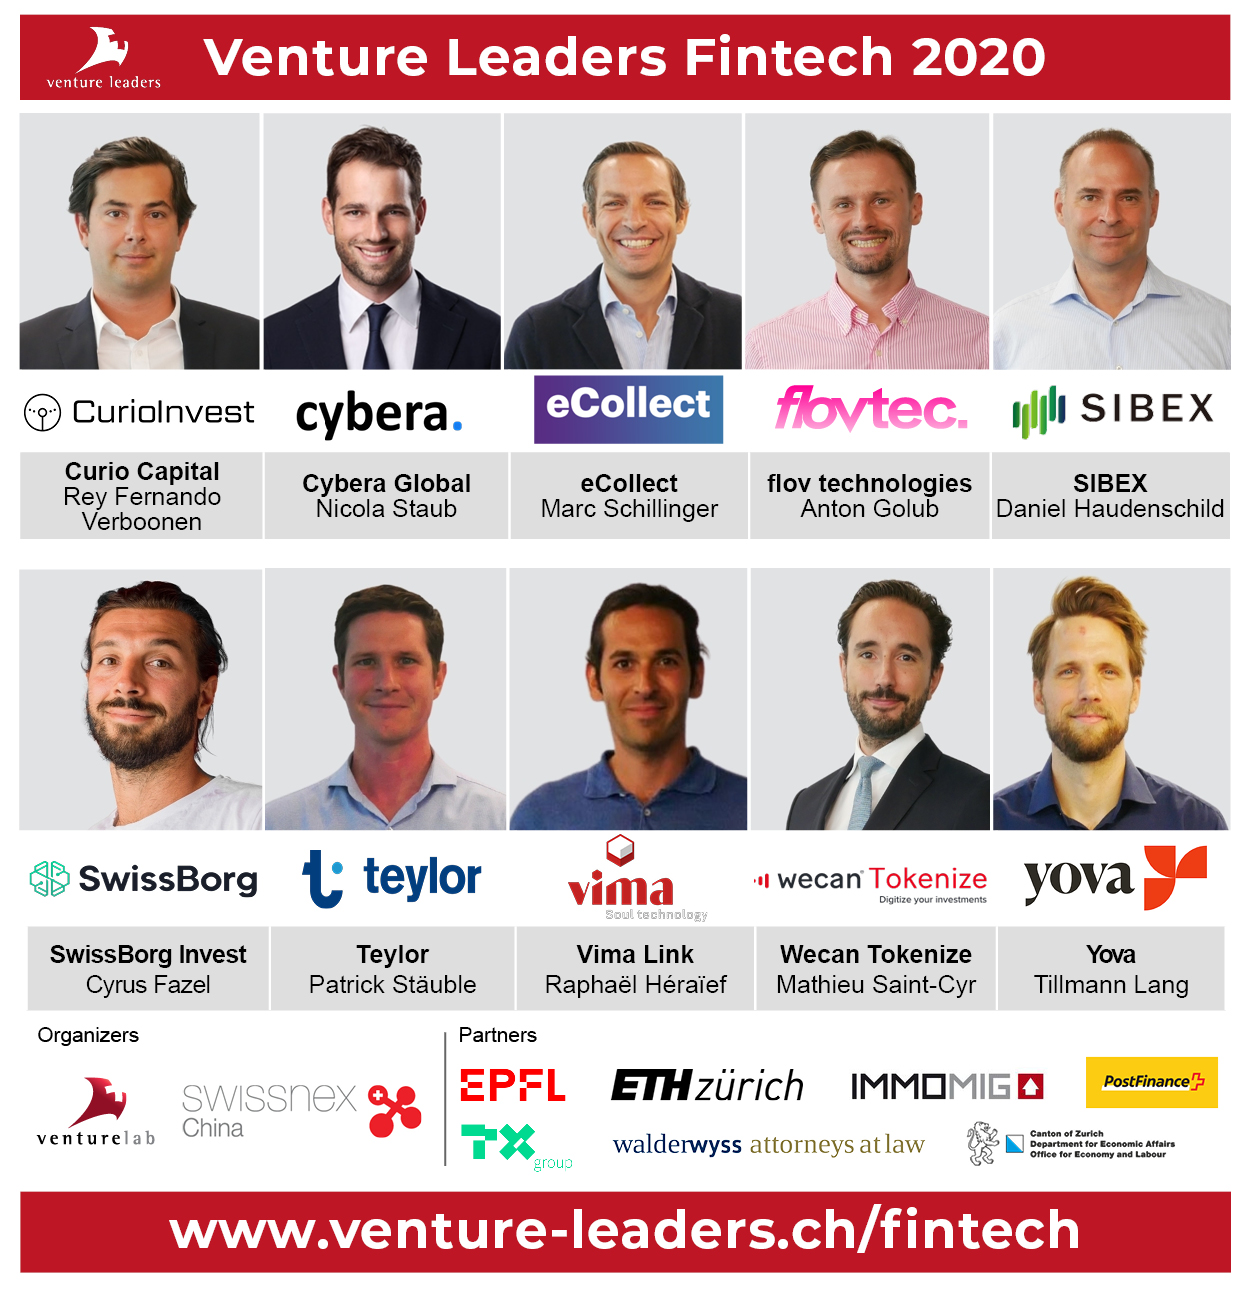 Meet the Venture Leaders Fintech 2020